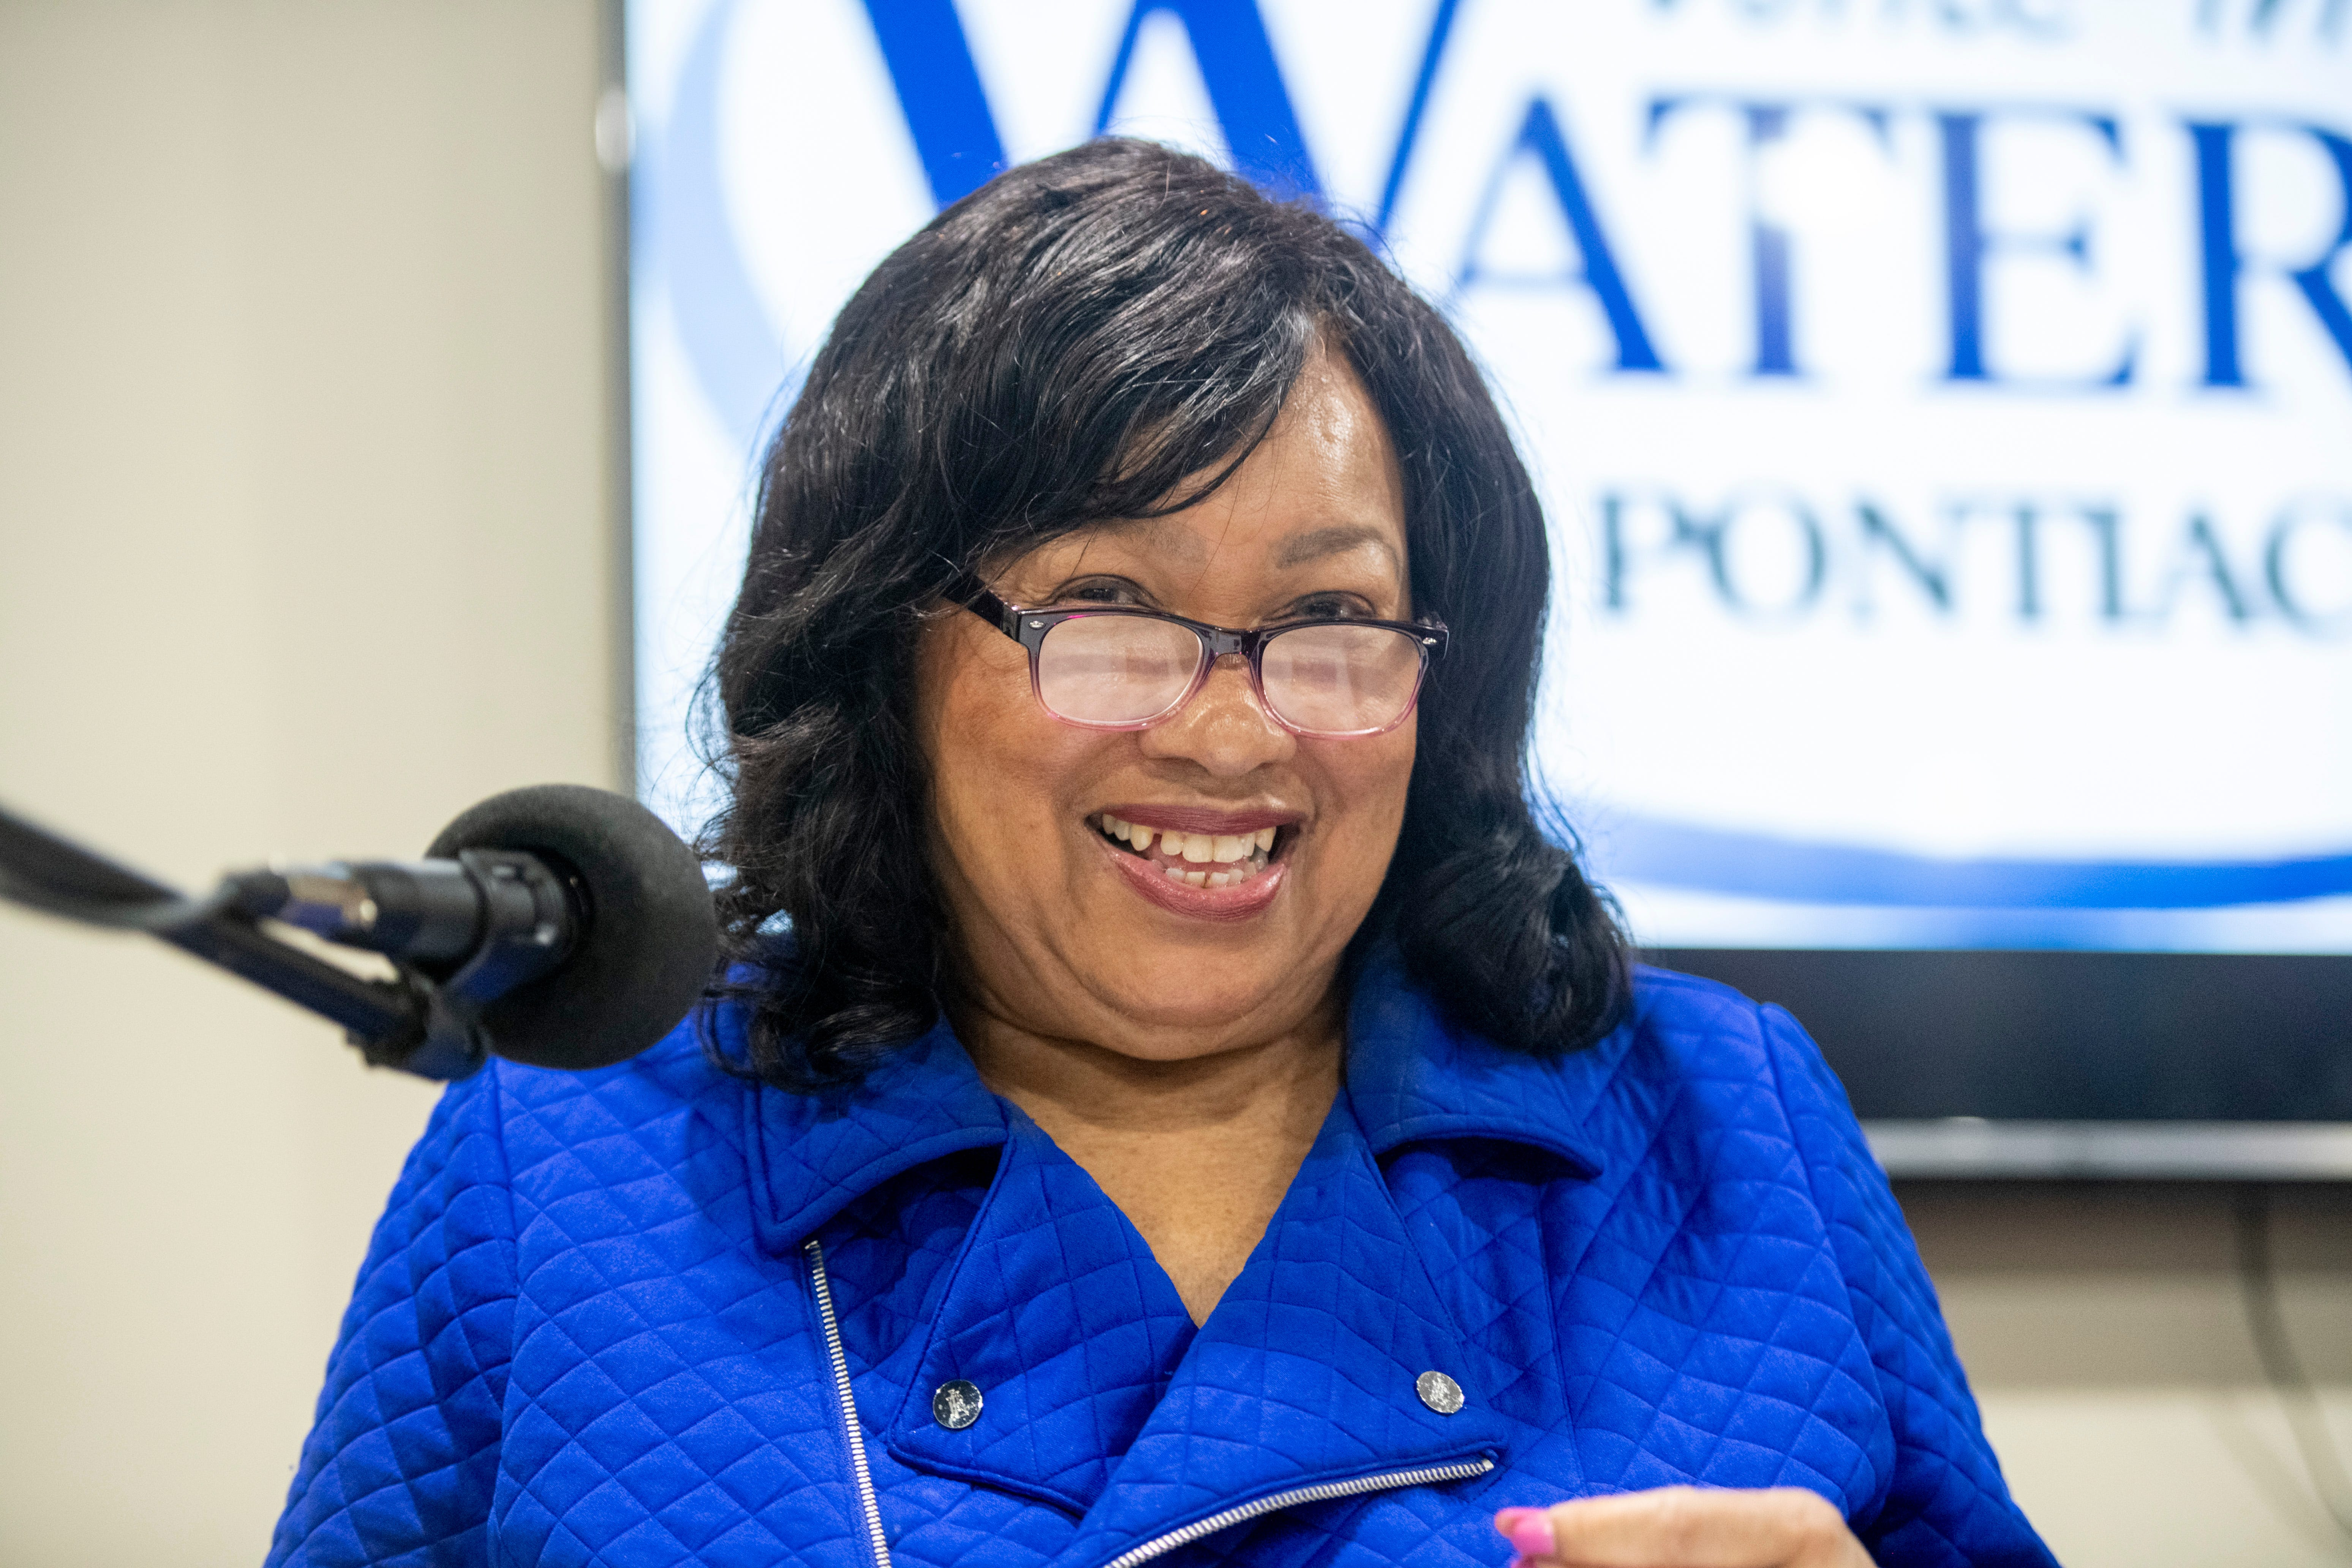 Pontiac mayor could face uphill battle for third term. Here's why